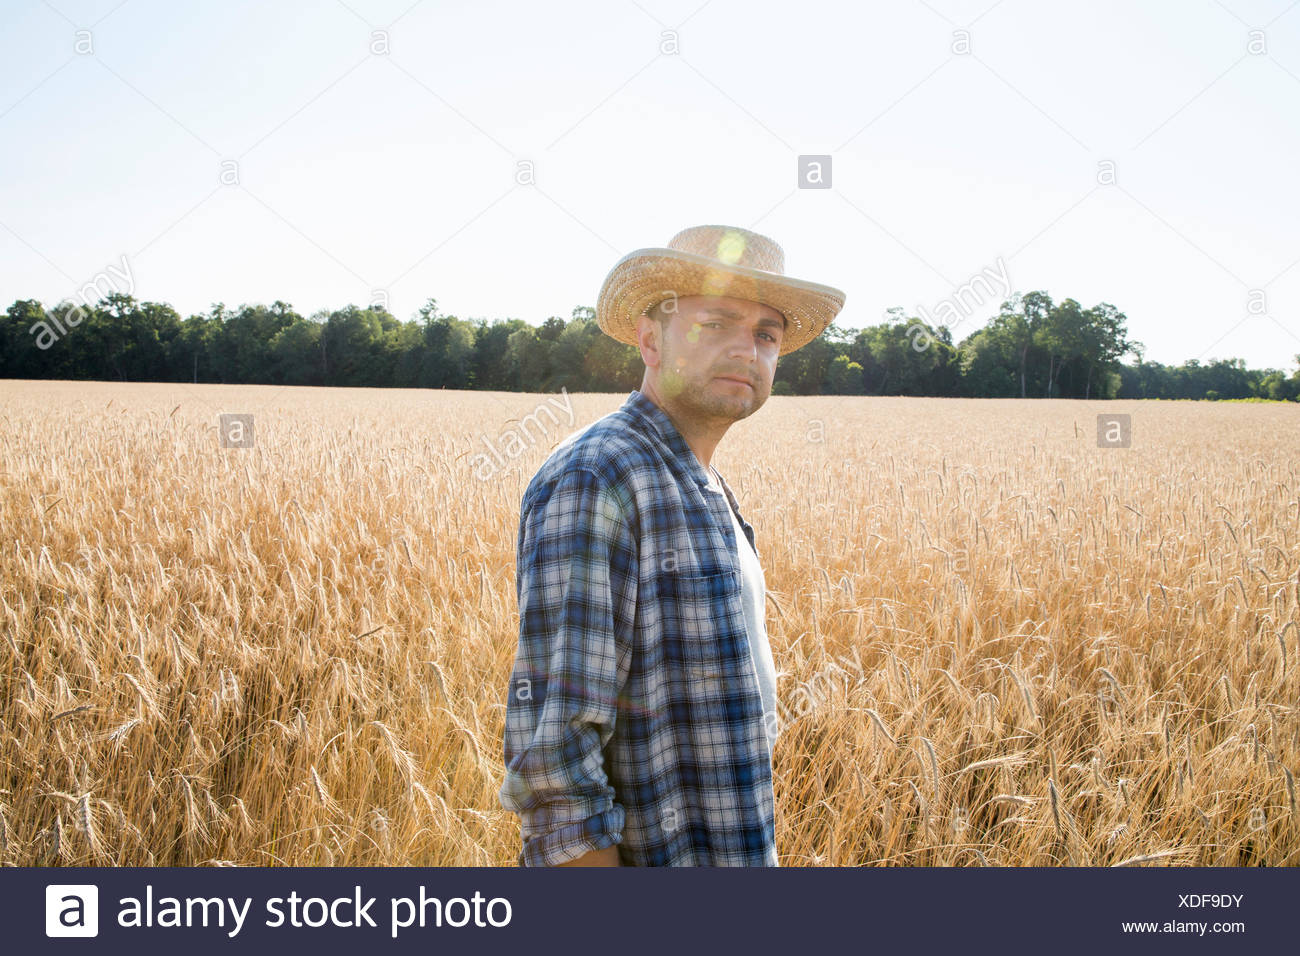 Man wearing a checkered shirt and a hat standing in a cornfield, a farmer. - Stock Image